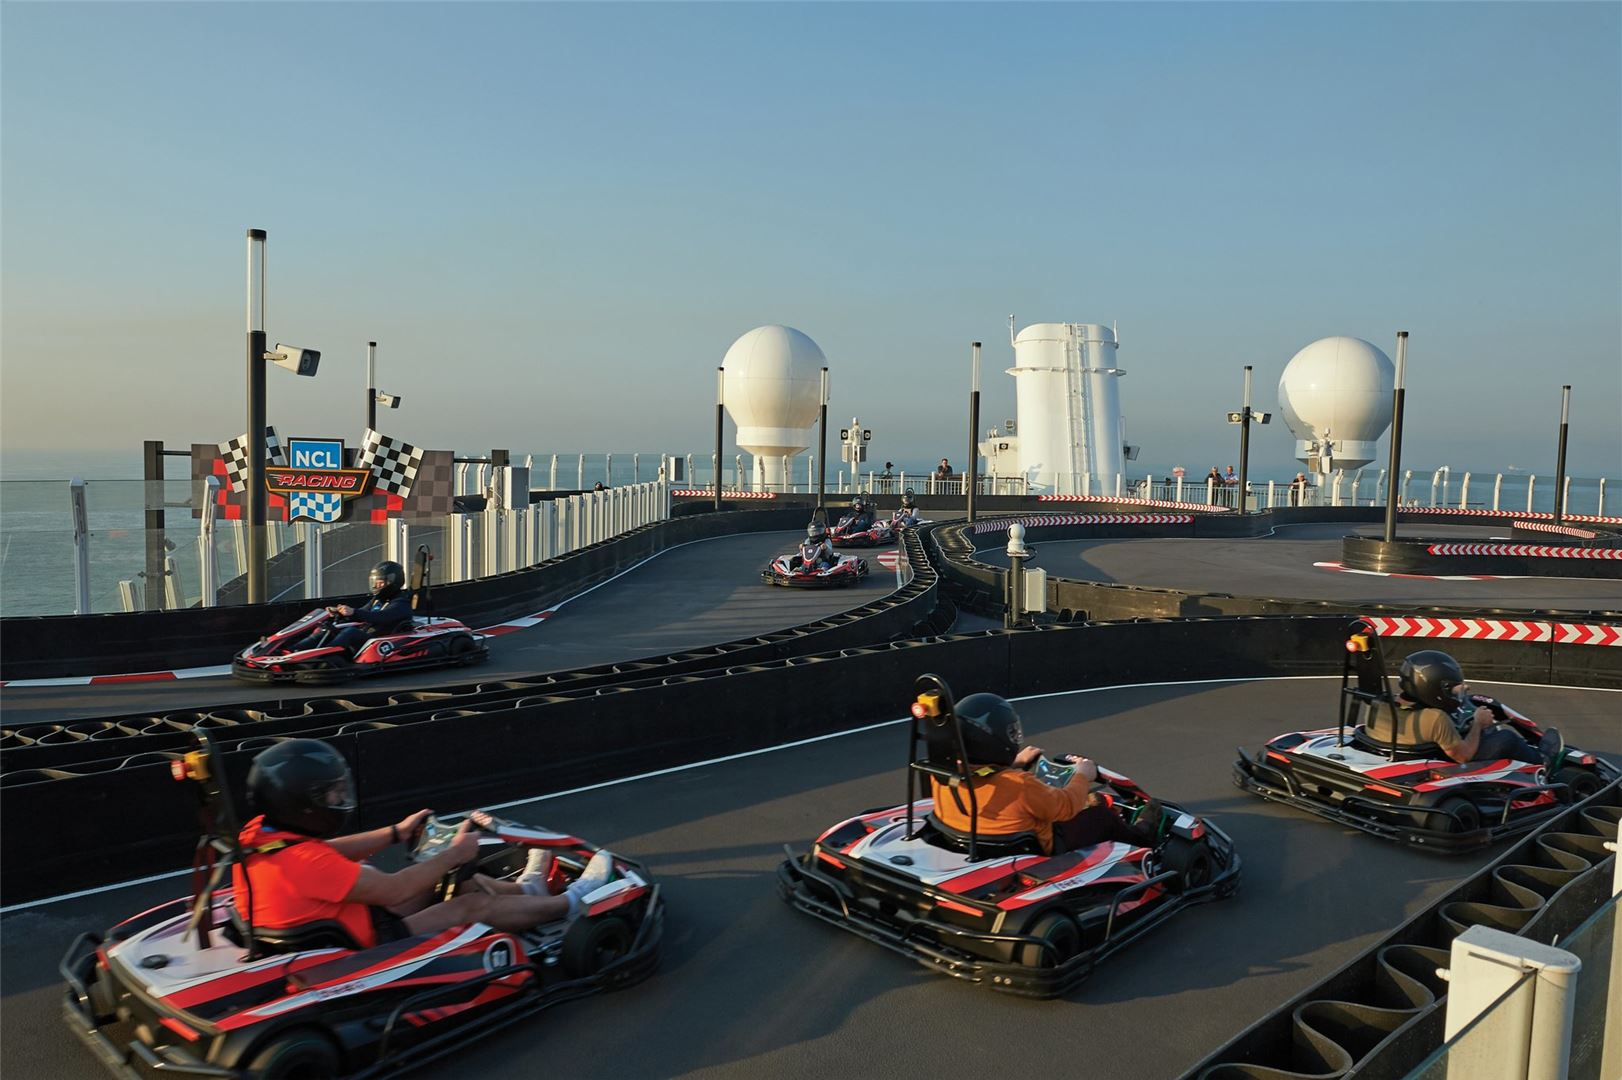 NCL Bliss Race Track.